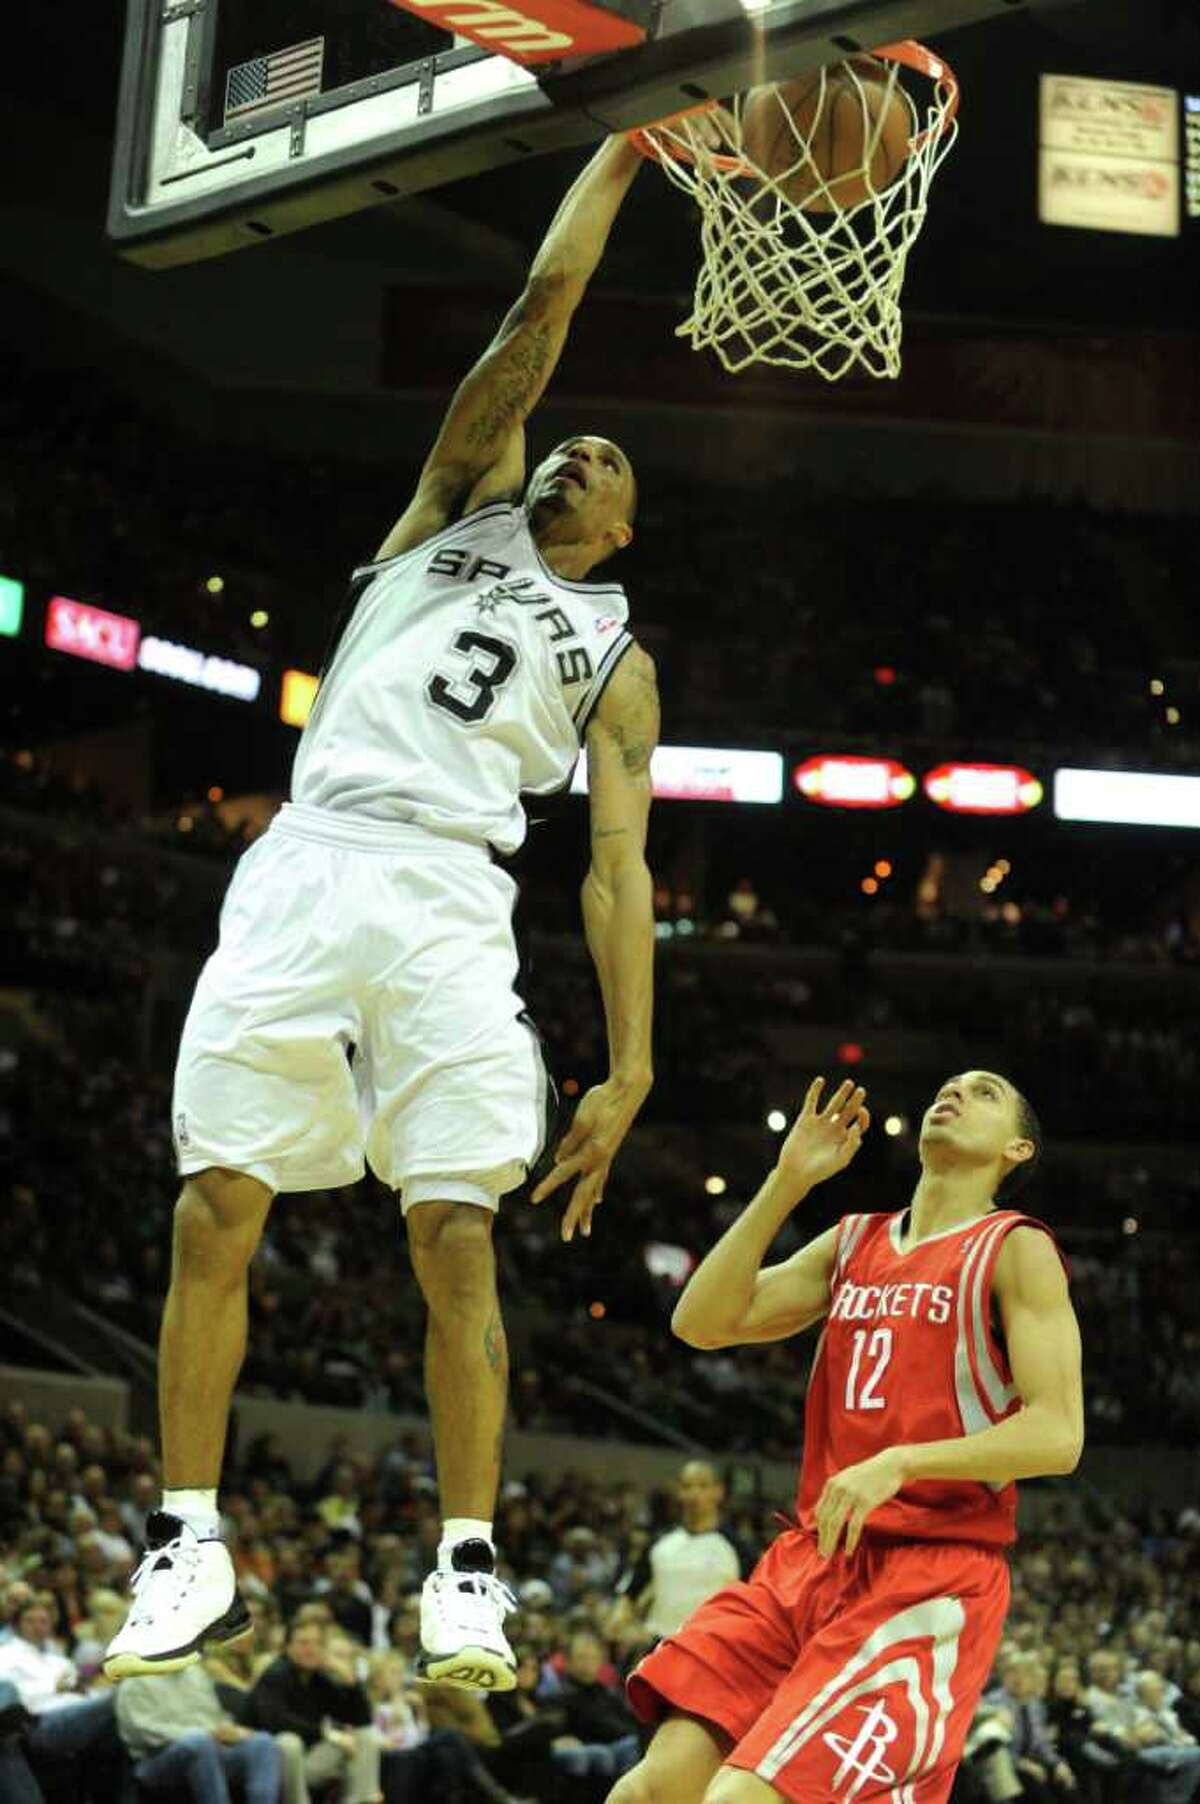 George Hill of the San Antonio Spurs dunks to end a breakaway as Kevin Martin of the Houston Rockets gives chase during NBA action at the AT&T Center on Saturday, Jan. 29, 2011. BILLY CALZADA / gcalzada@express-news.net Houston Rockets at San Antonio Spurs